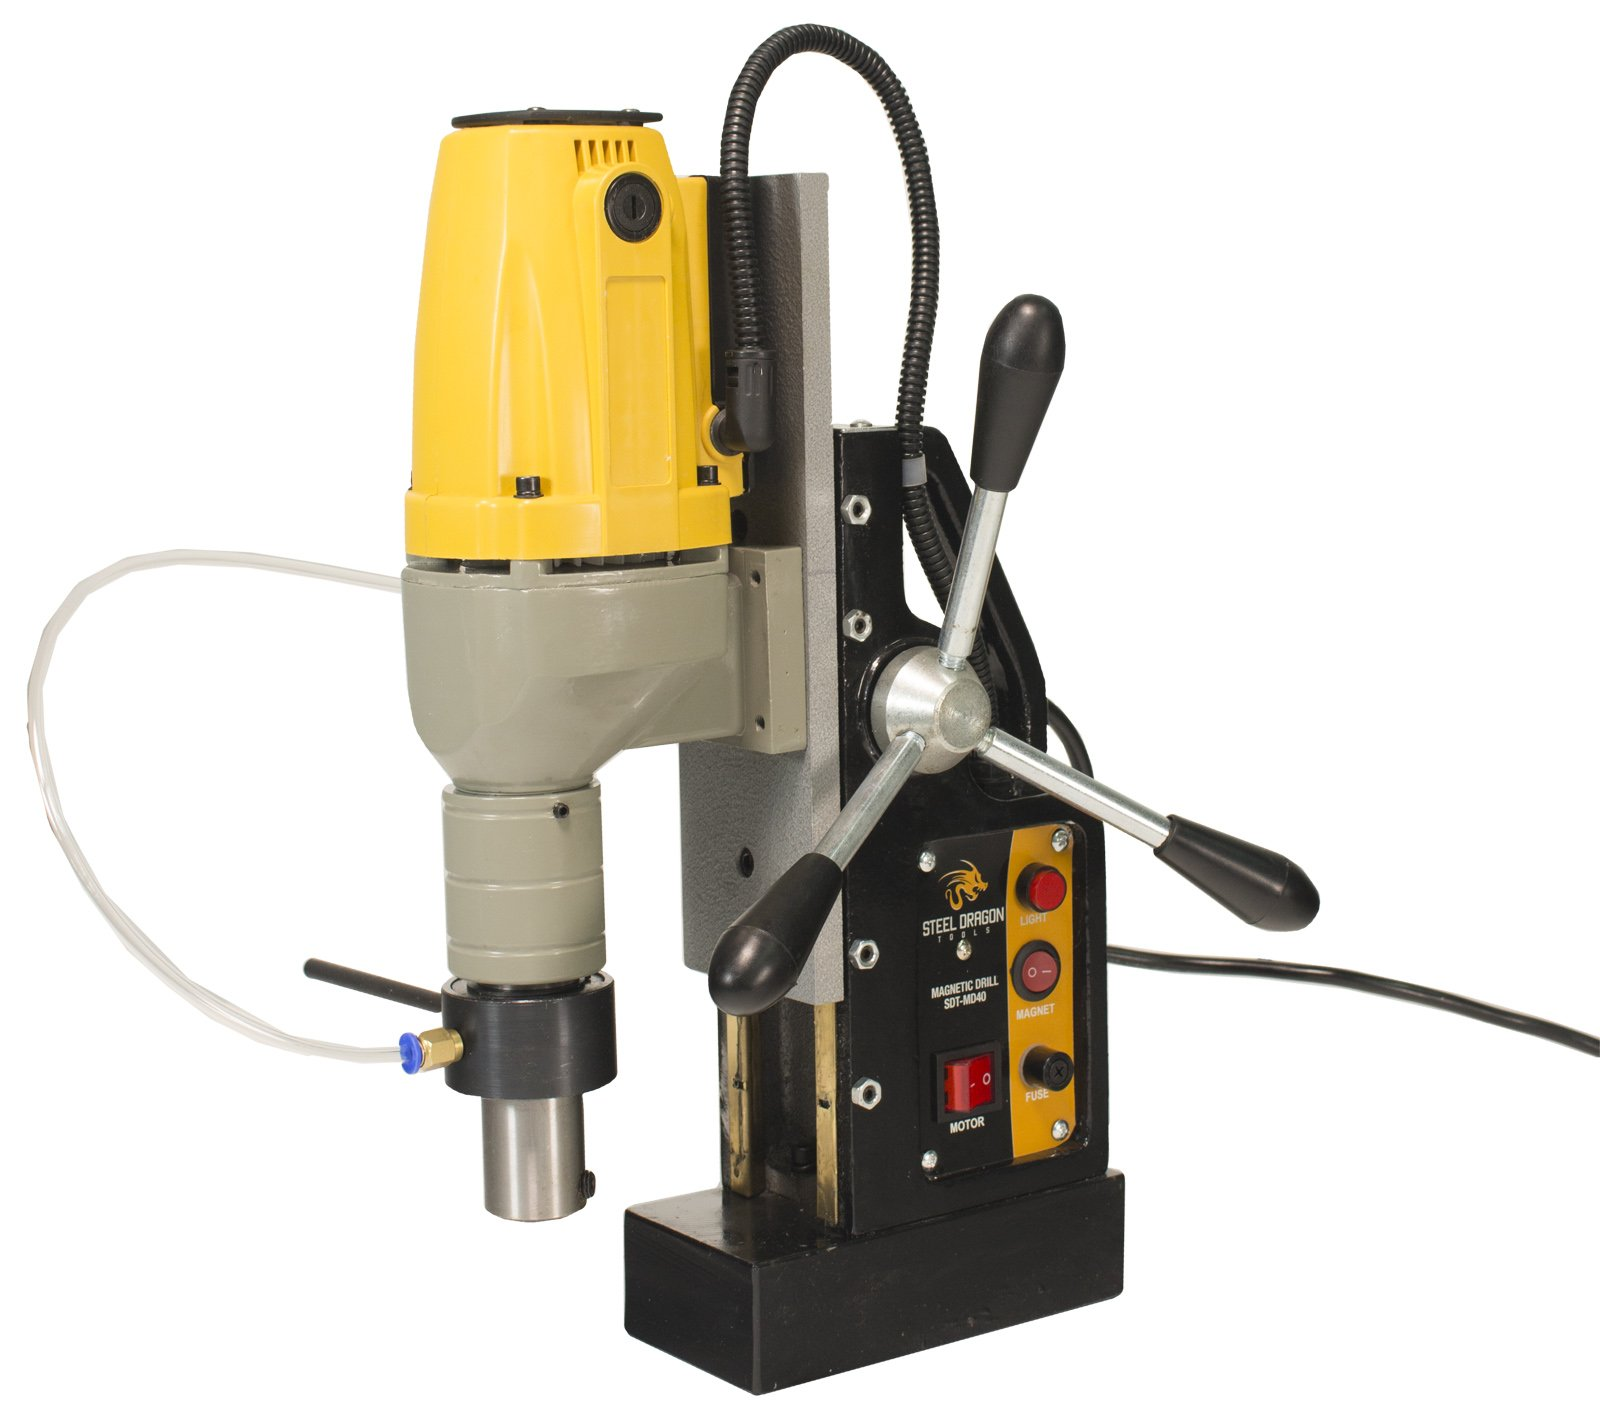 Steel Dragon Tools MD40 Magnetic Drill Press with 1-1/2'' Boring Diameter & 2700lb Magnetic Force by Steel Dragon Tools (Image #1)